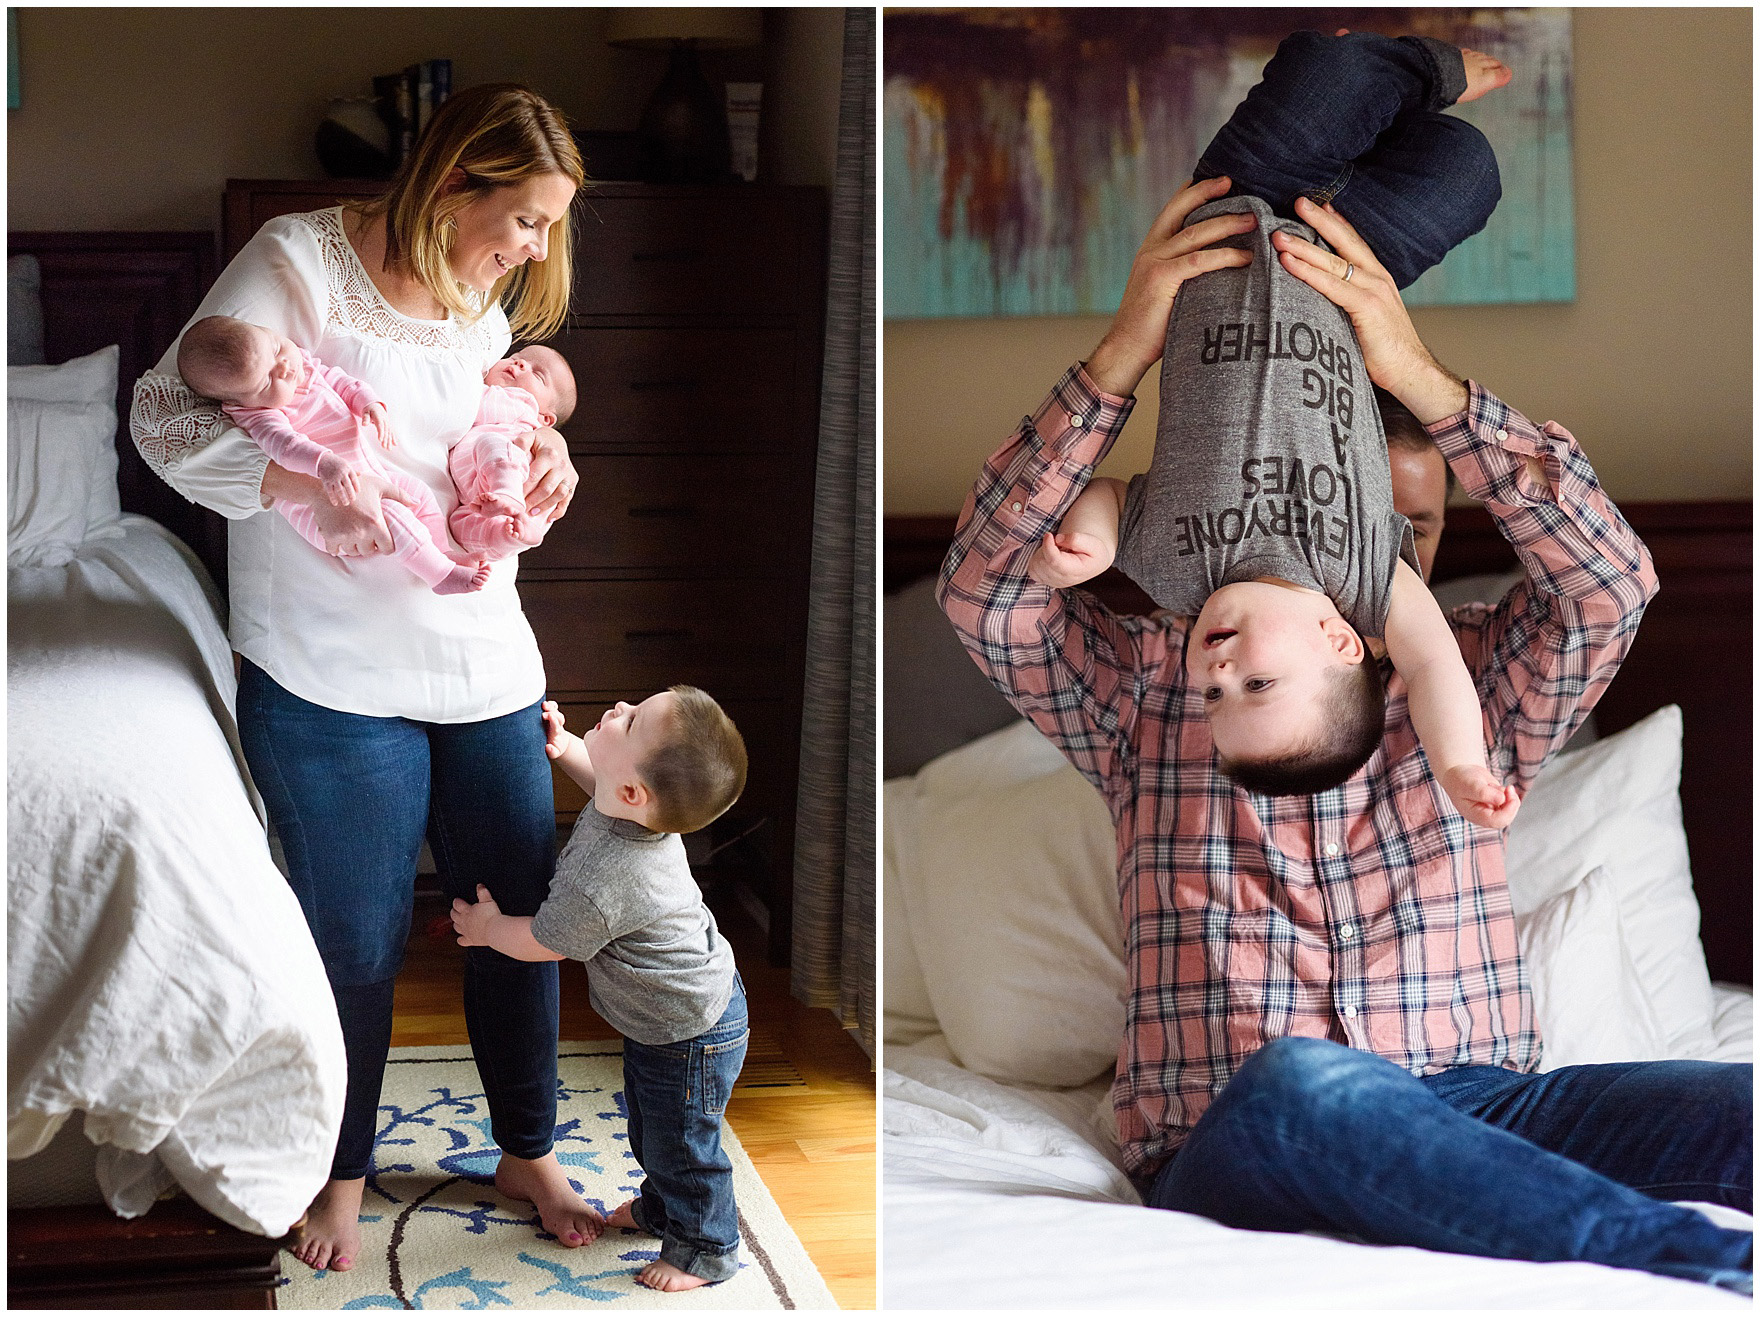 Mom and dad play with toddler boy during a West Loop Chicago newborn session.